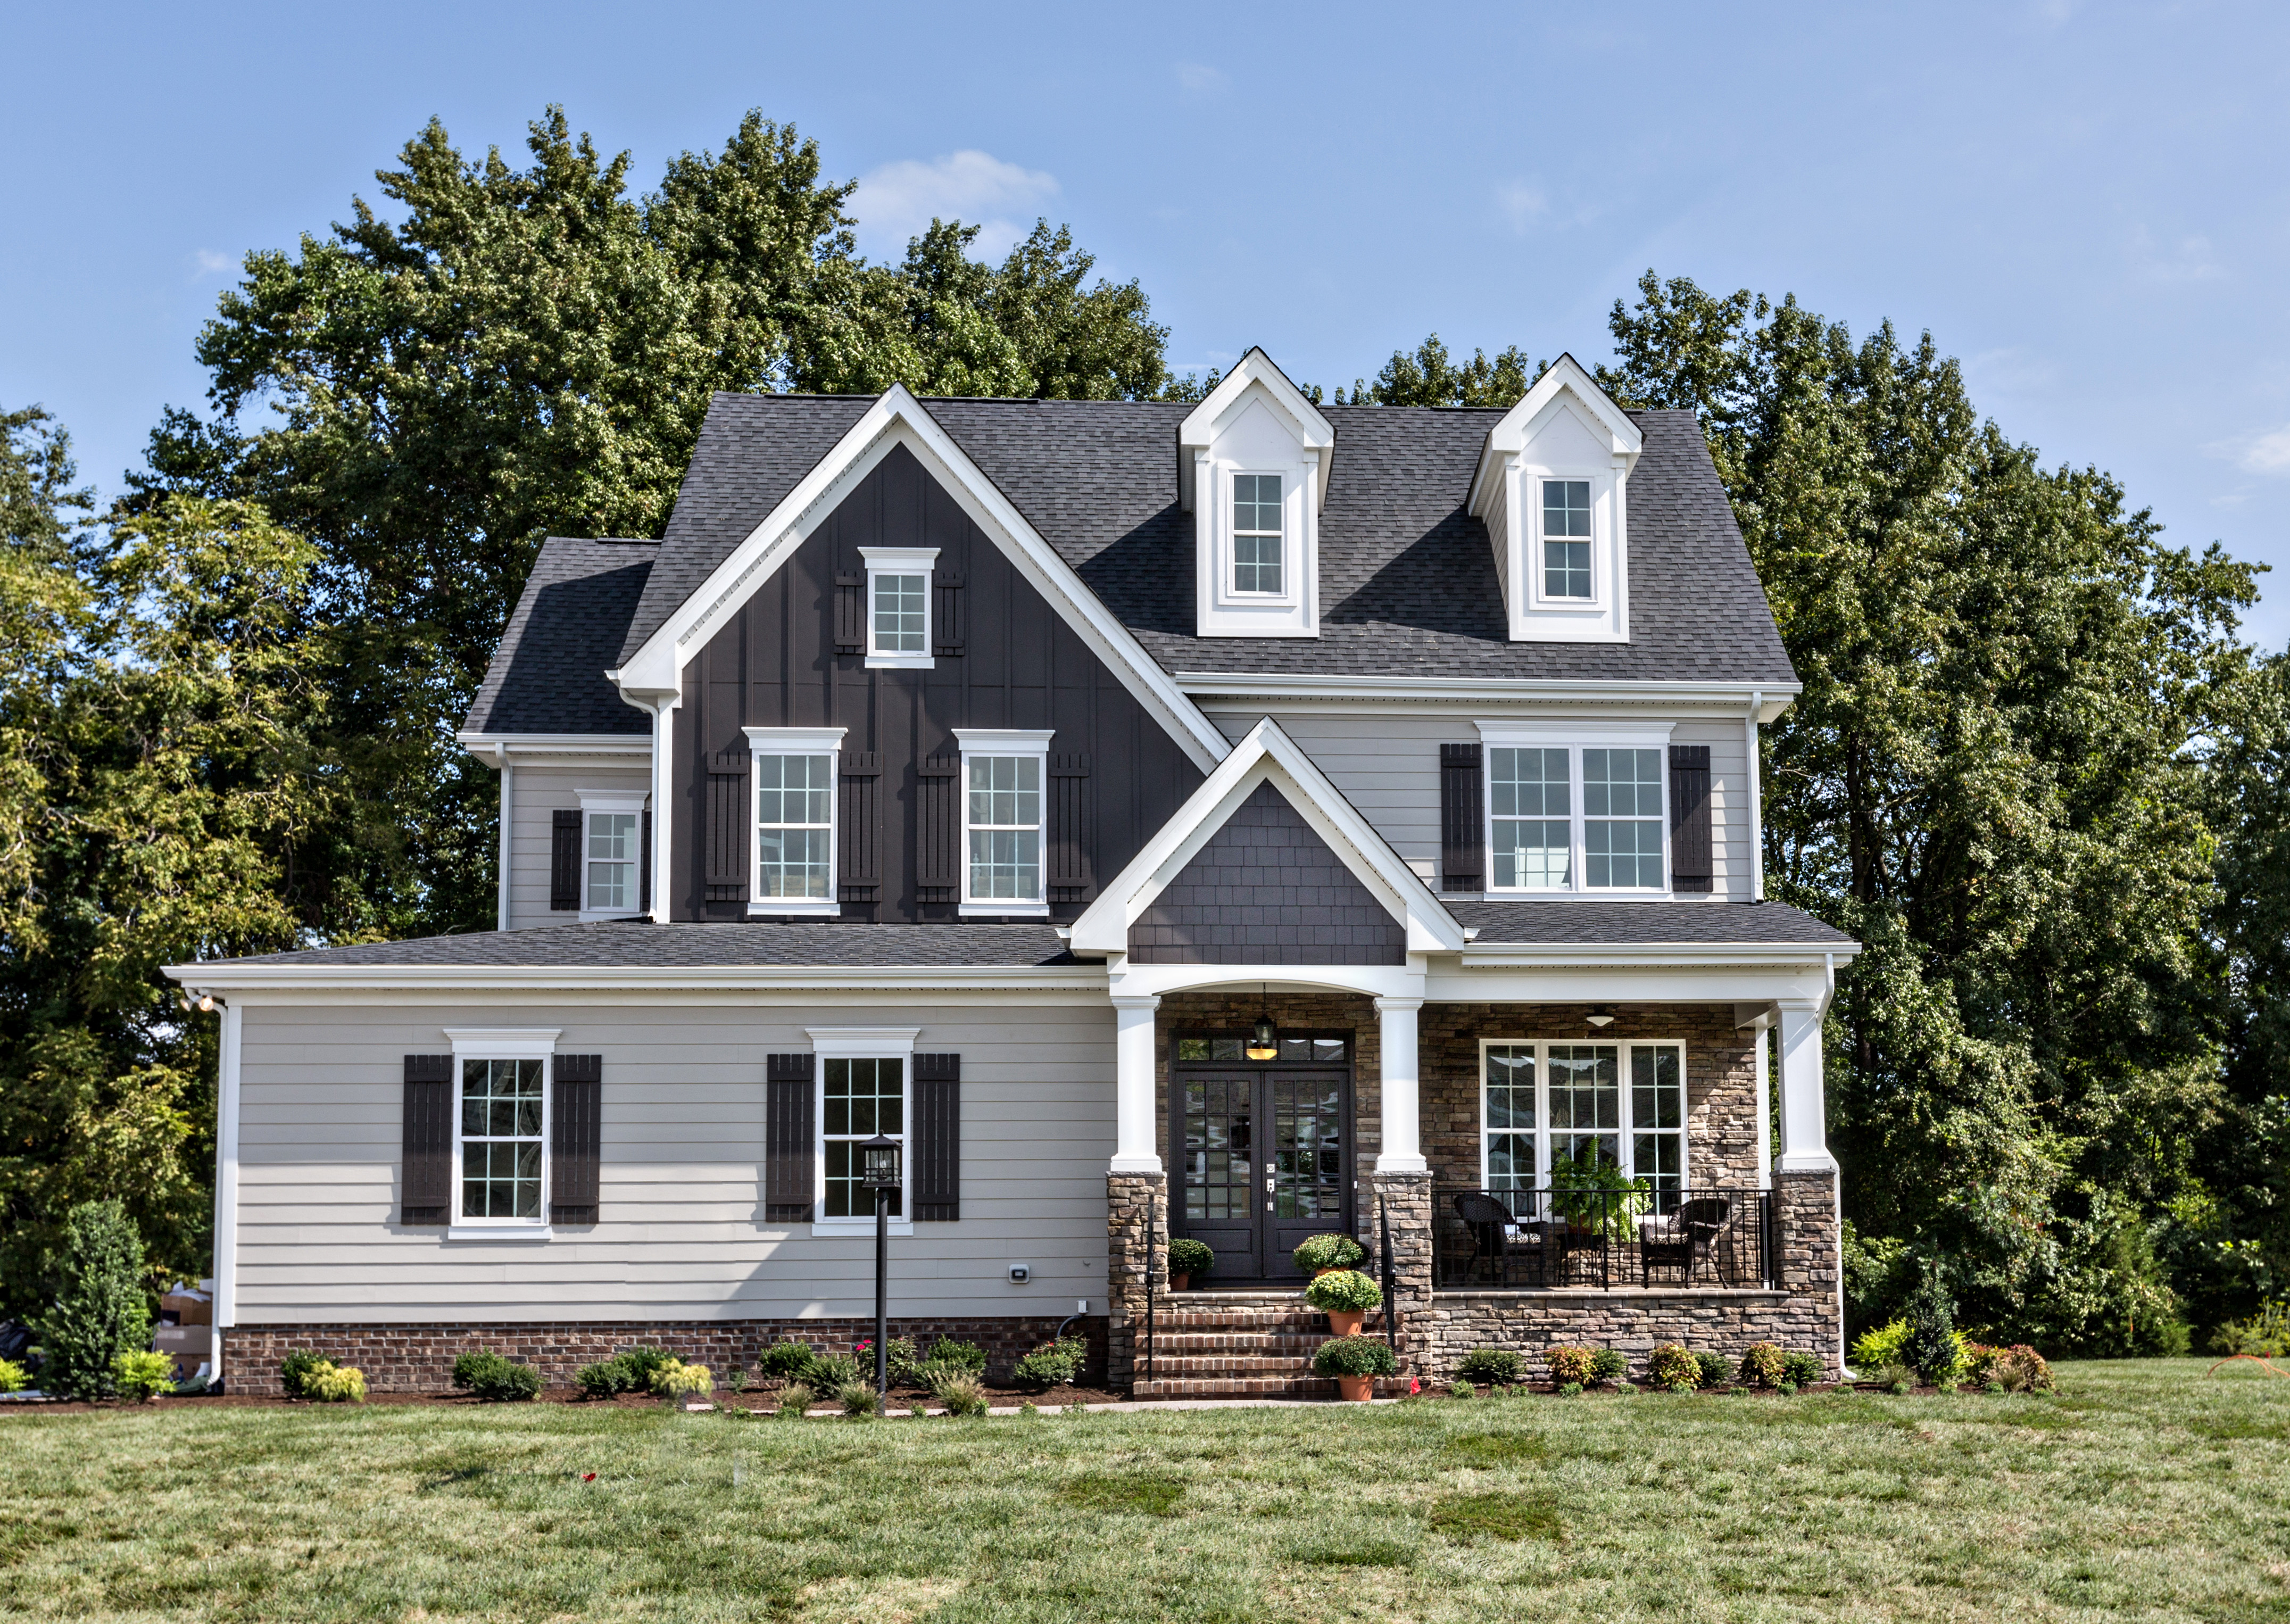 English cottage home offers gracious living for today 39 s homebuyer founders pointe - English cottage ...